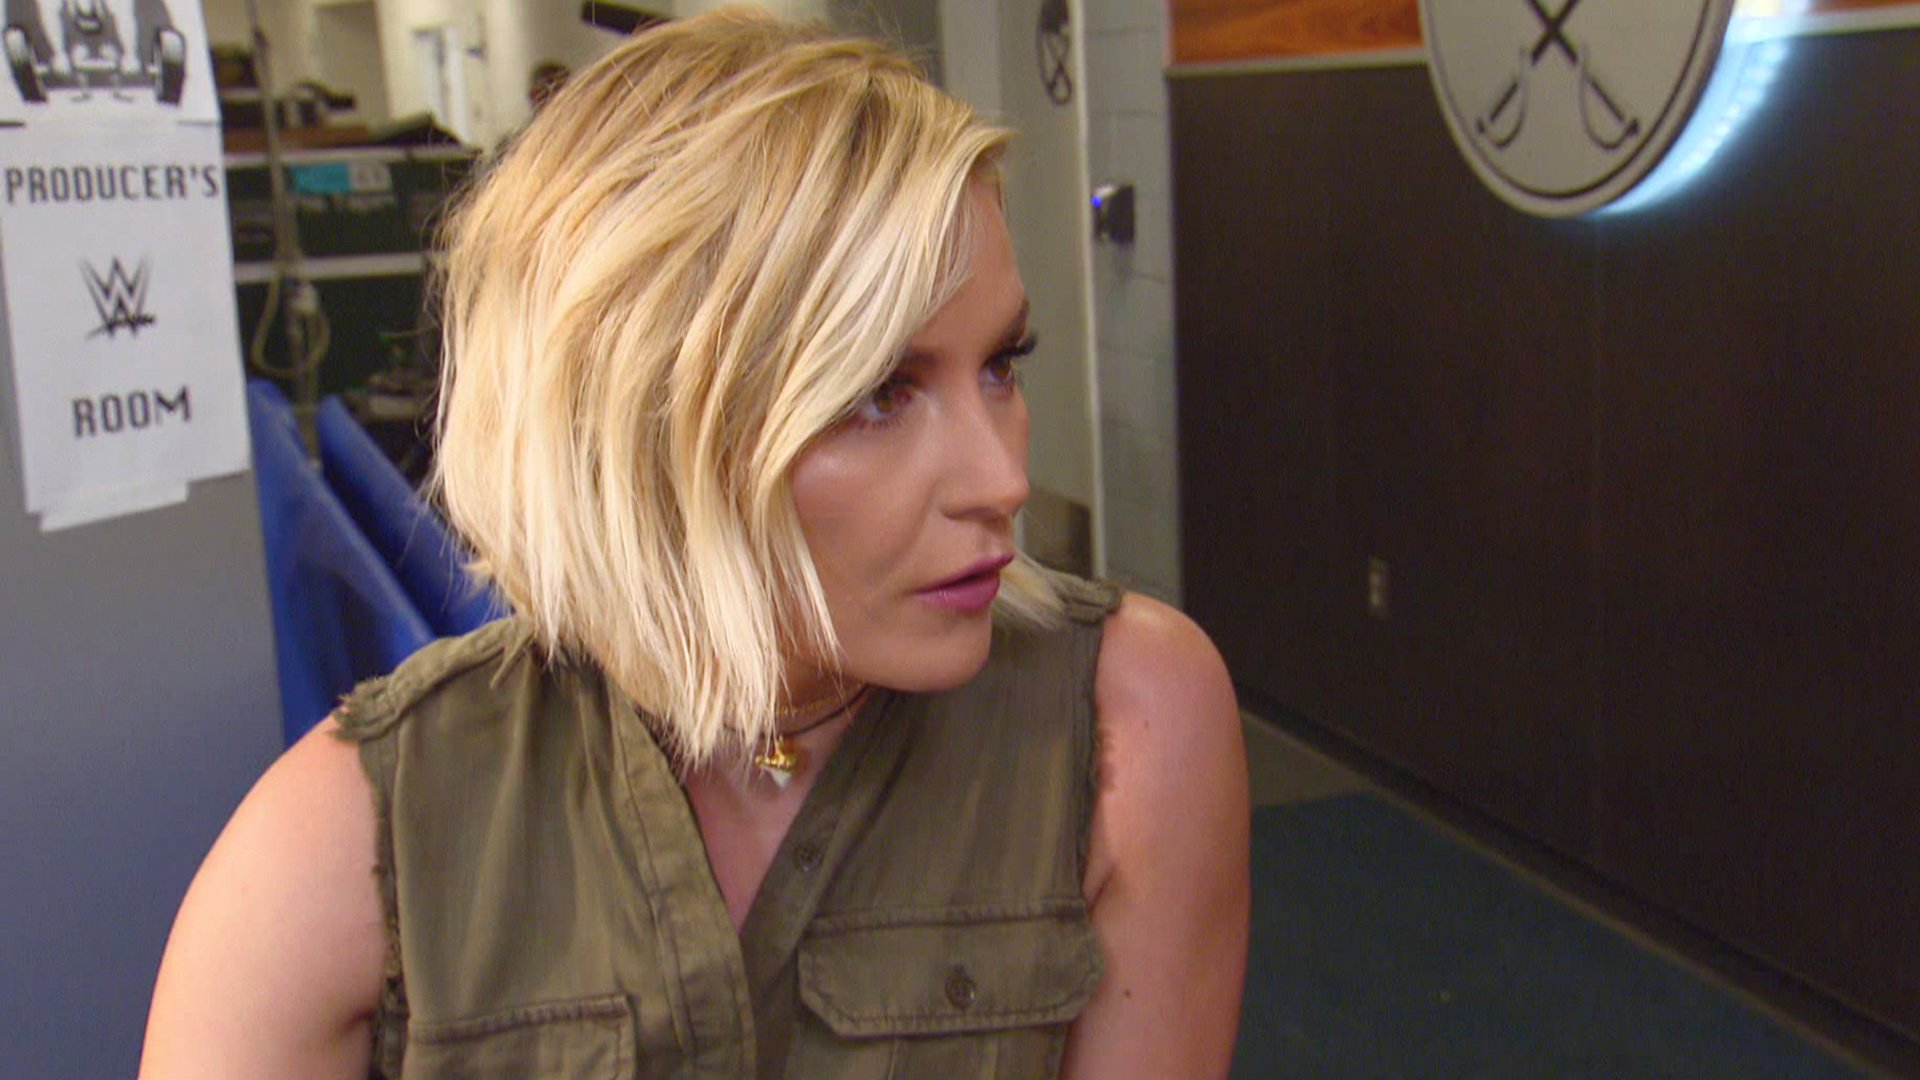 When Natalya shows Renee pictures of her cat, 2Pawz, an idea forms in Renee's head ...